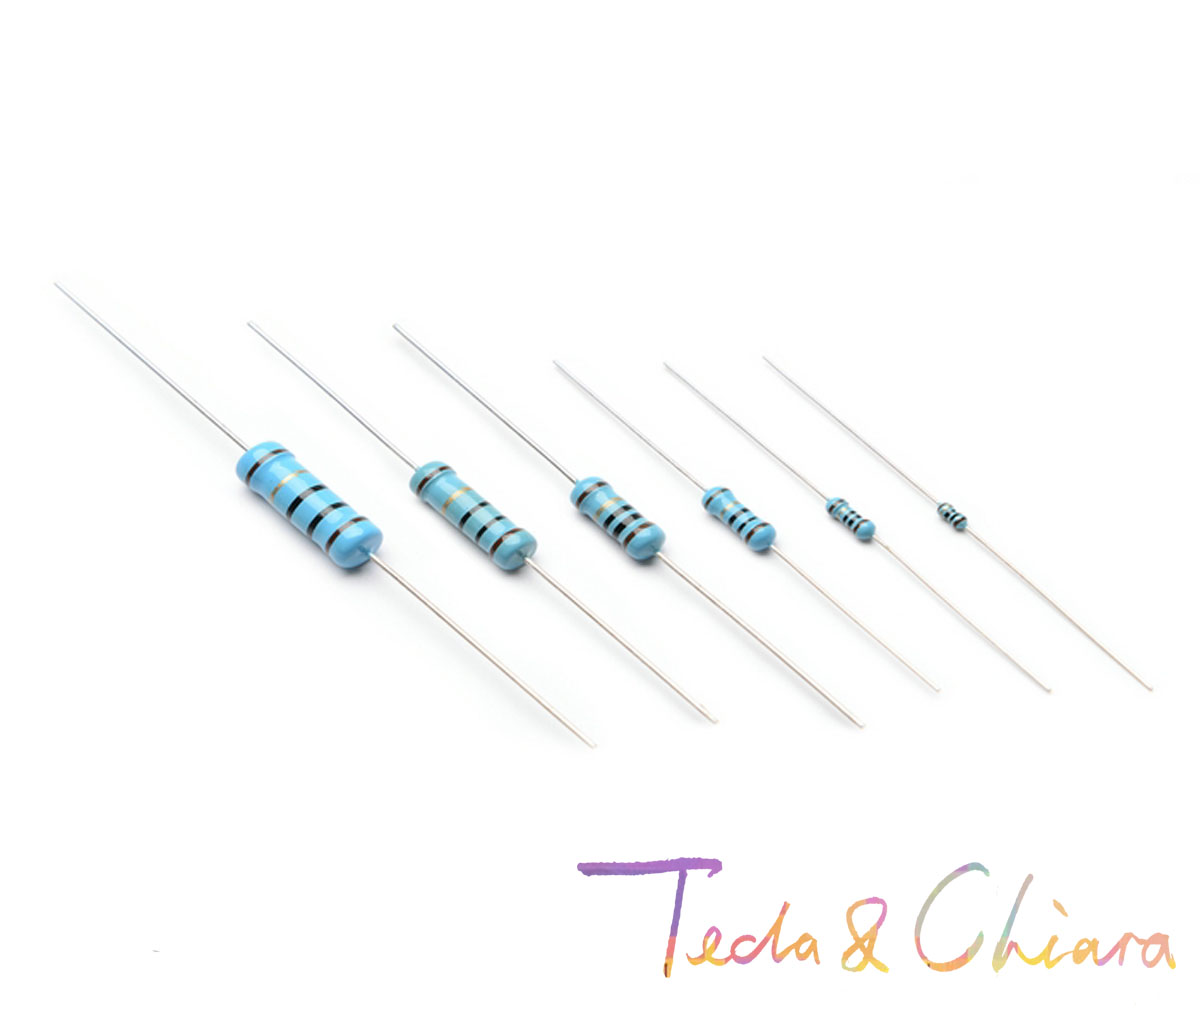 100Pcs 9.1R 10R 12R 15R 9.1Ohm 10Ohm 12Ohm 15Ohm 9.1 10 12 15 R Ohm 1W 1% Metal Film Resistor Colored ring Resistance